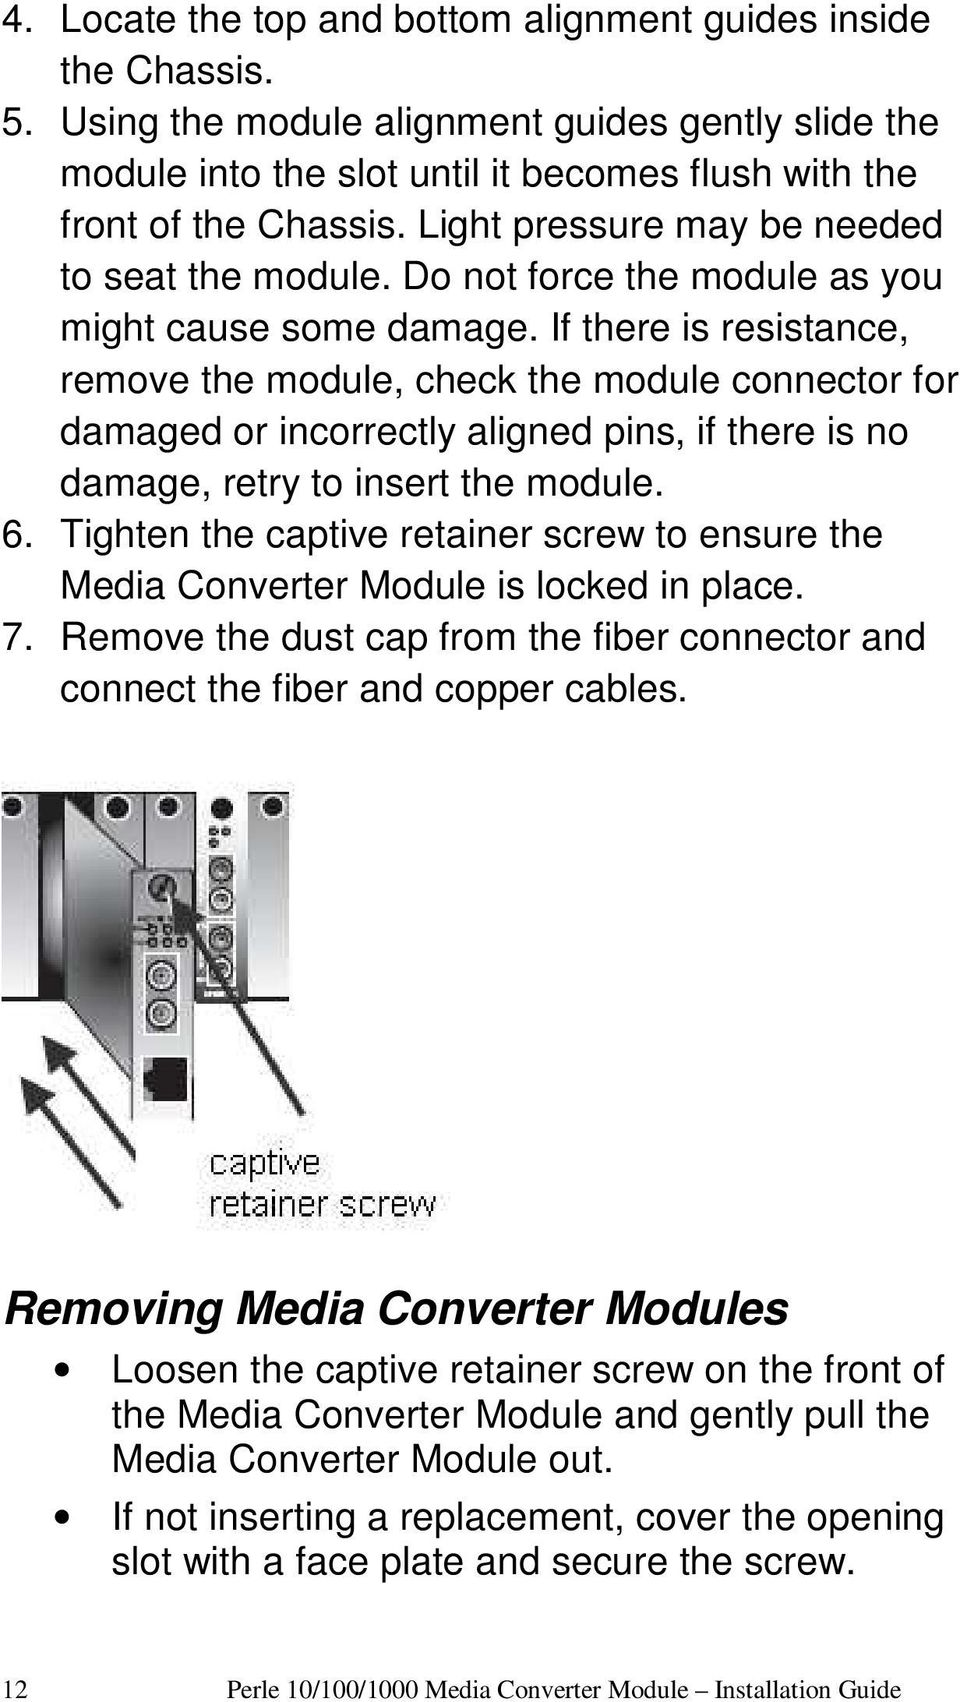 If there is resistance, remove the module, check the module connector for damaged or incorrectly aligned pins, if there is no damage, retry to insert the module. 6.